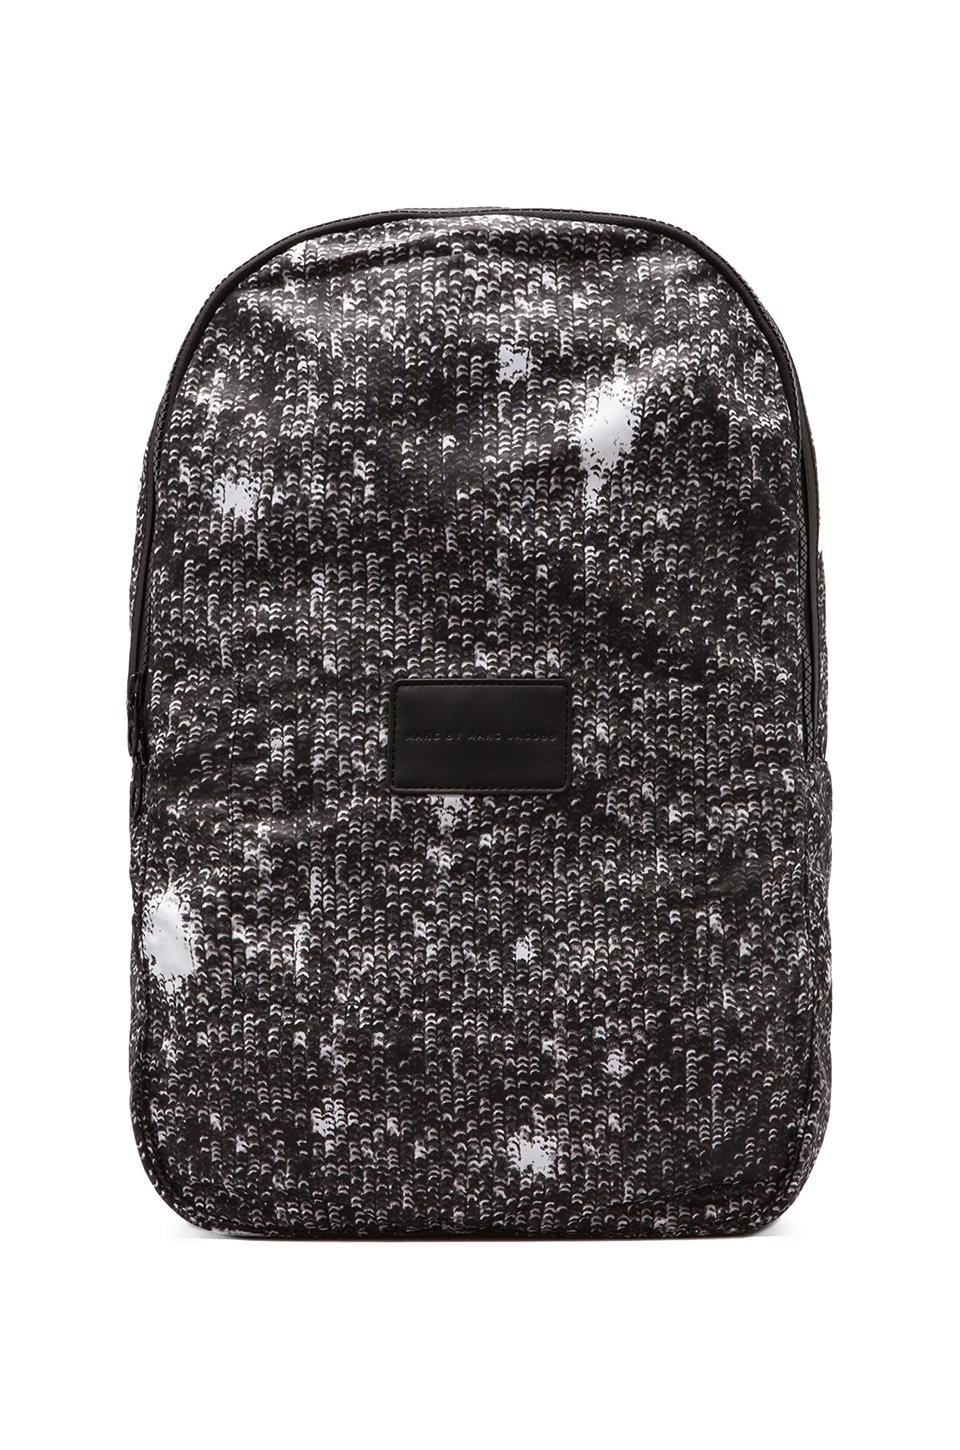 Marc by Marc Jacobs Packables Glitter Print Backpack in Black Multi